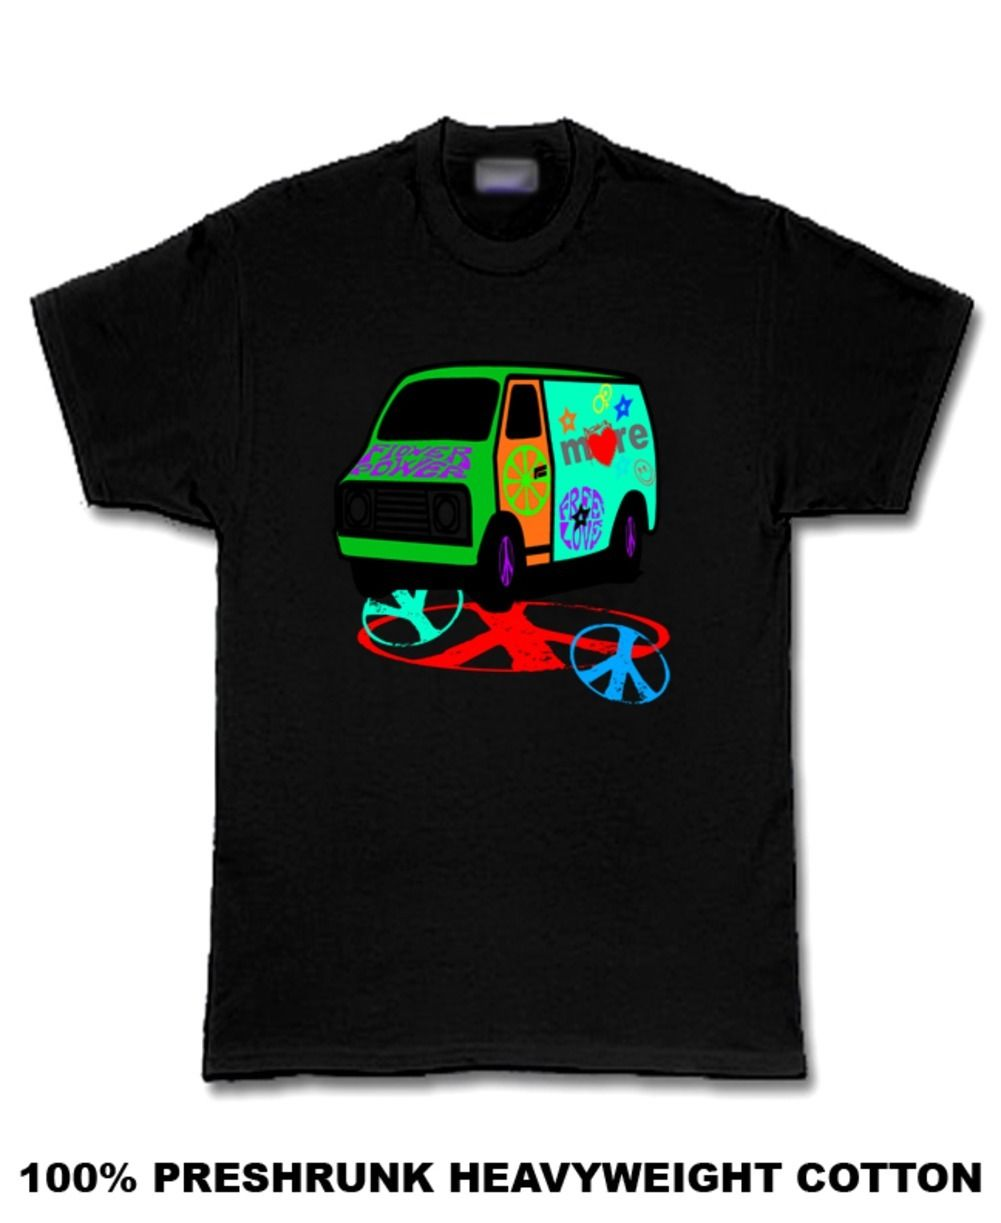 More Love 70s Van for black new age hippie T Shirt Cartoon t shirt men Unisex New Fashion tshirt free shipping top ajax 2018